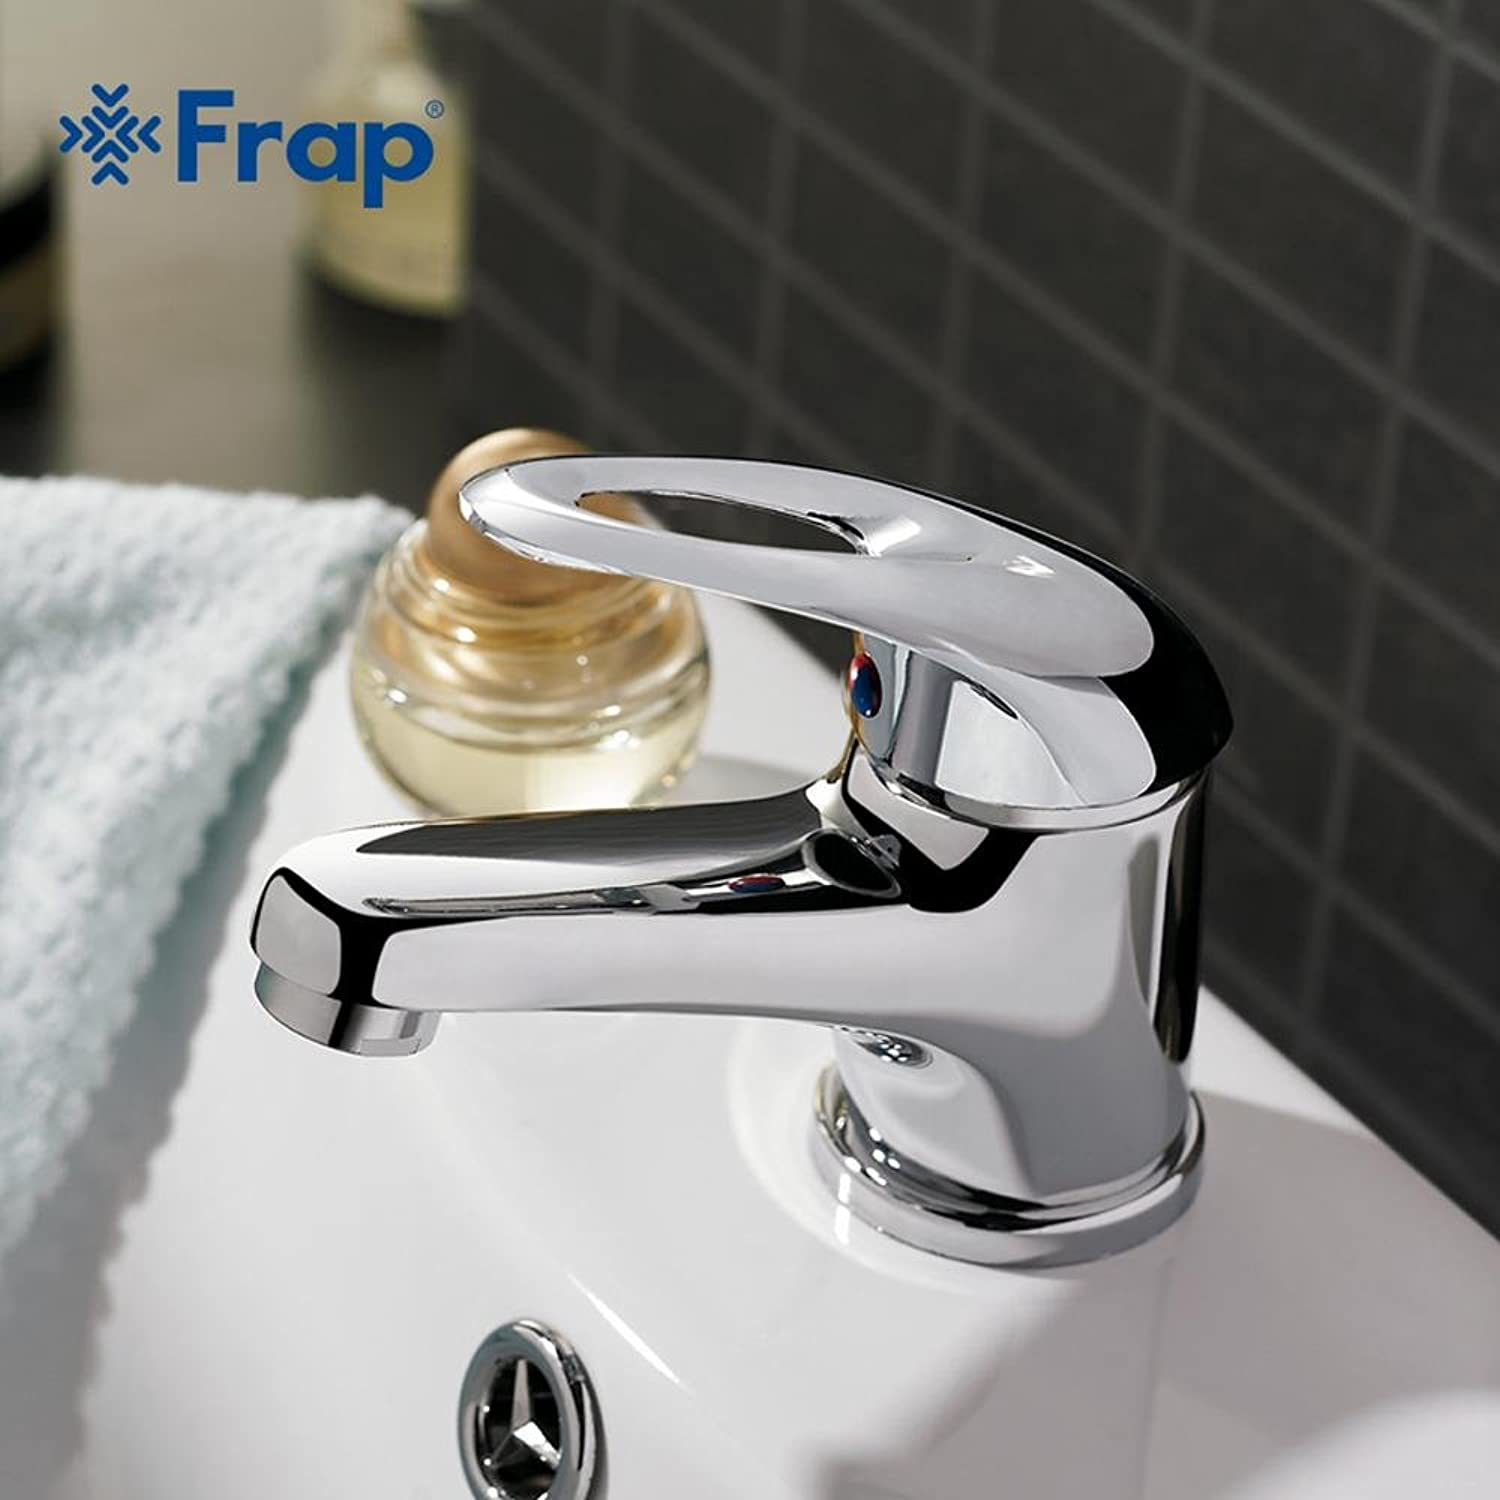 Homeloye Classic Style Basin Faucet Deck Mounted Cold and Hot Water Mixer Single Handle Torneira F1003